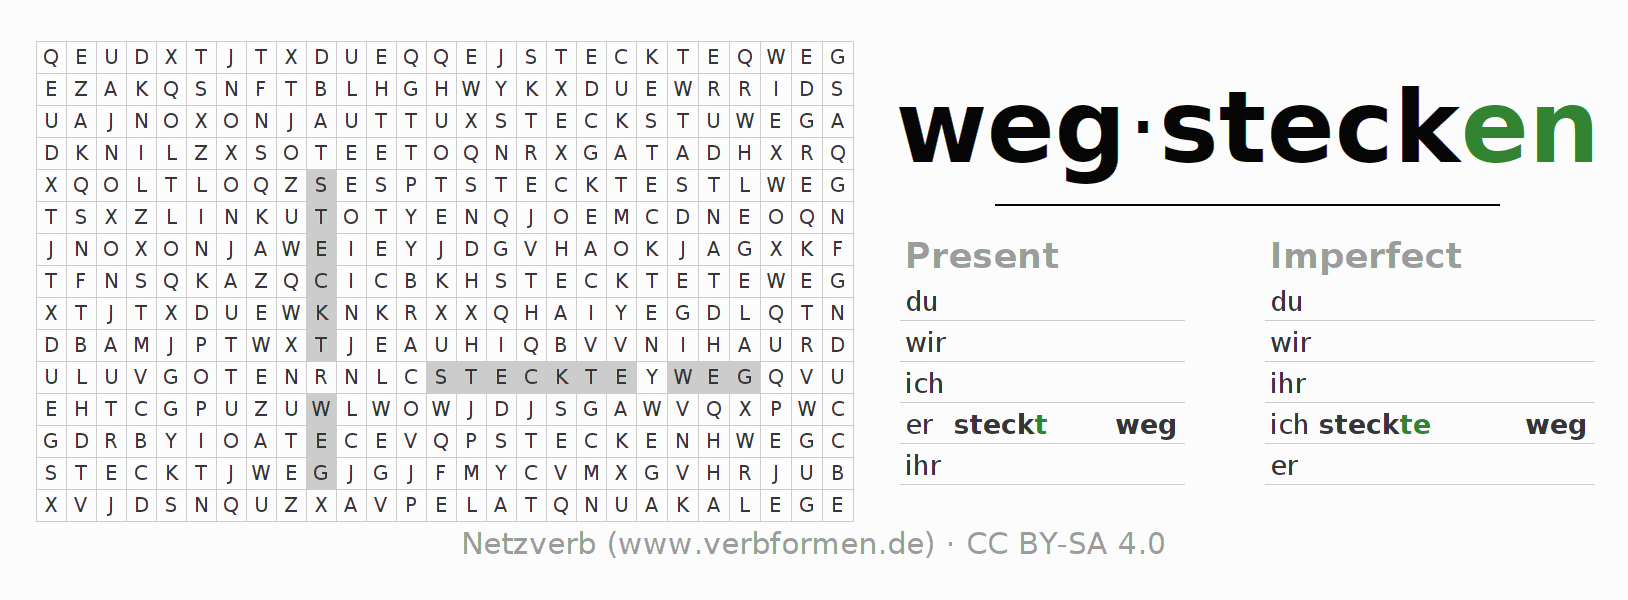 Word search puzzle for the conjugation of the verb wegstecken